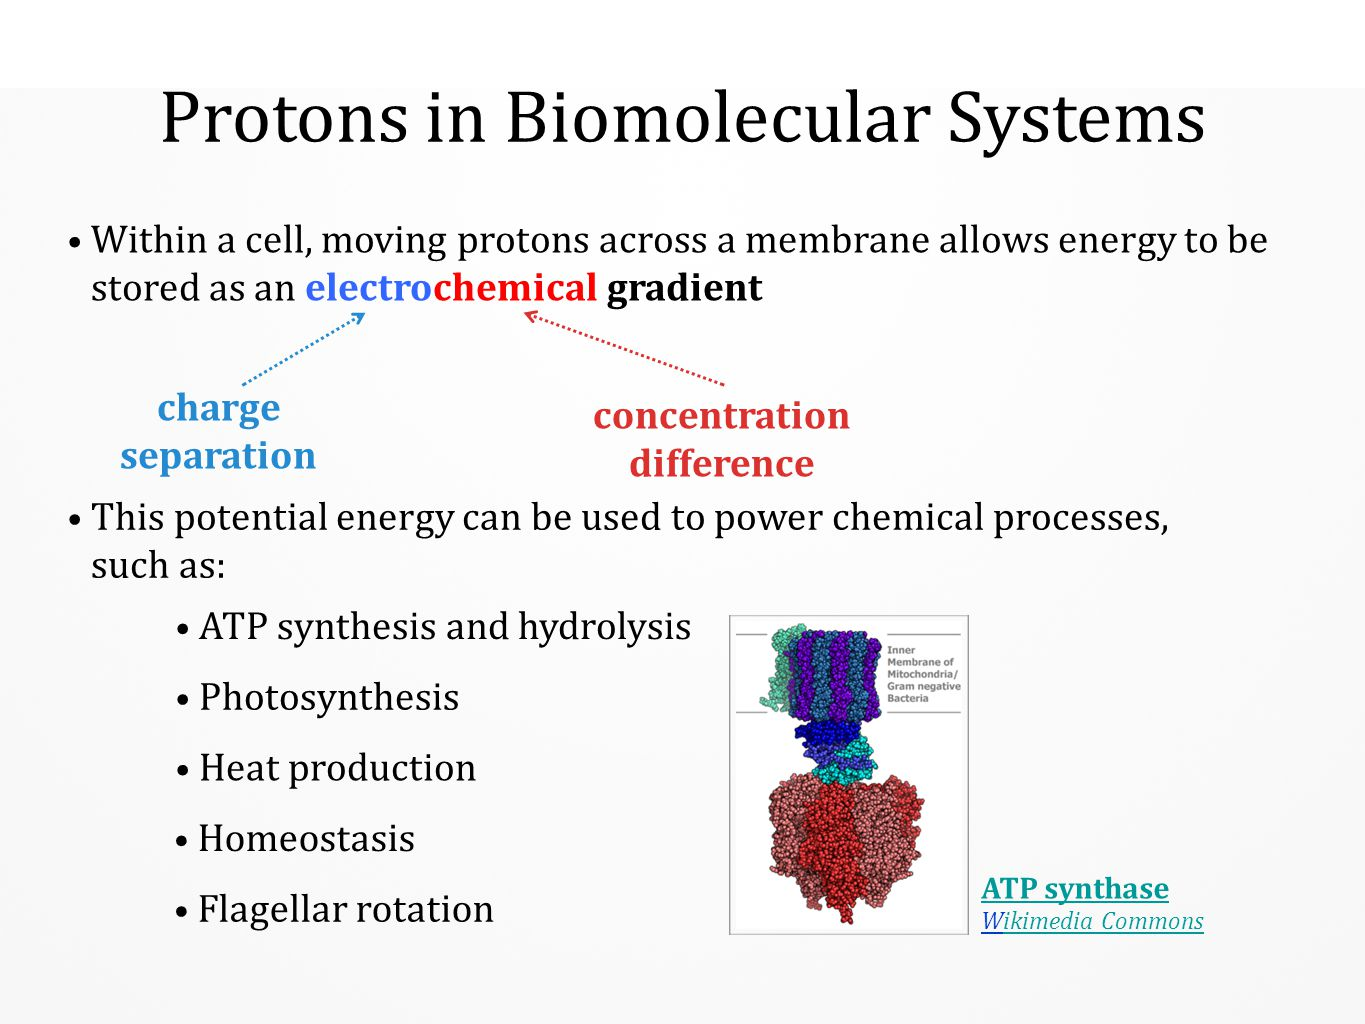 Protons in Biomolecular Systems